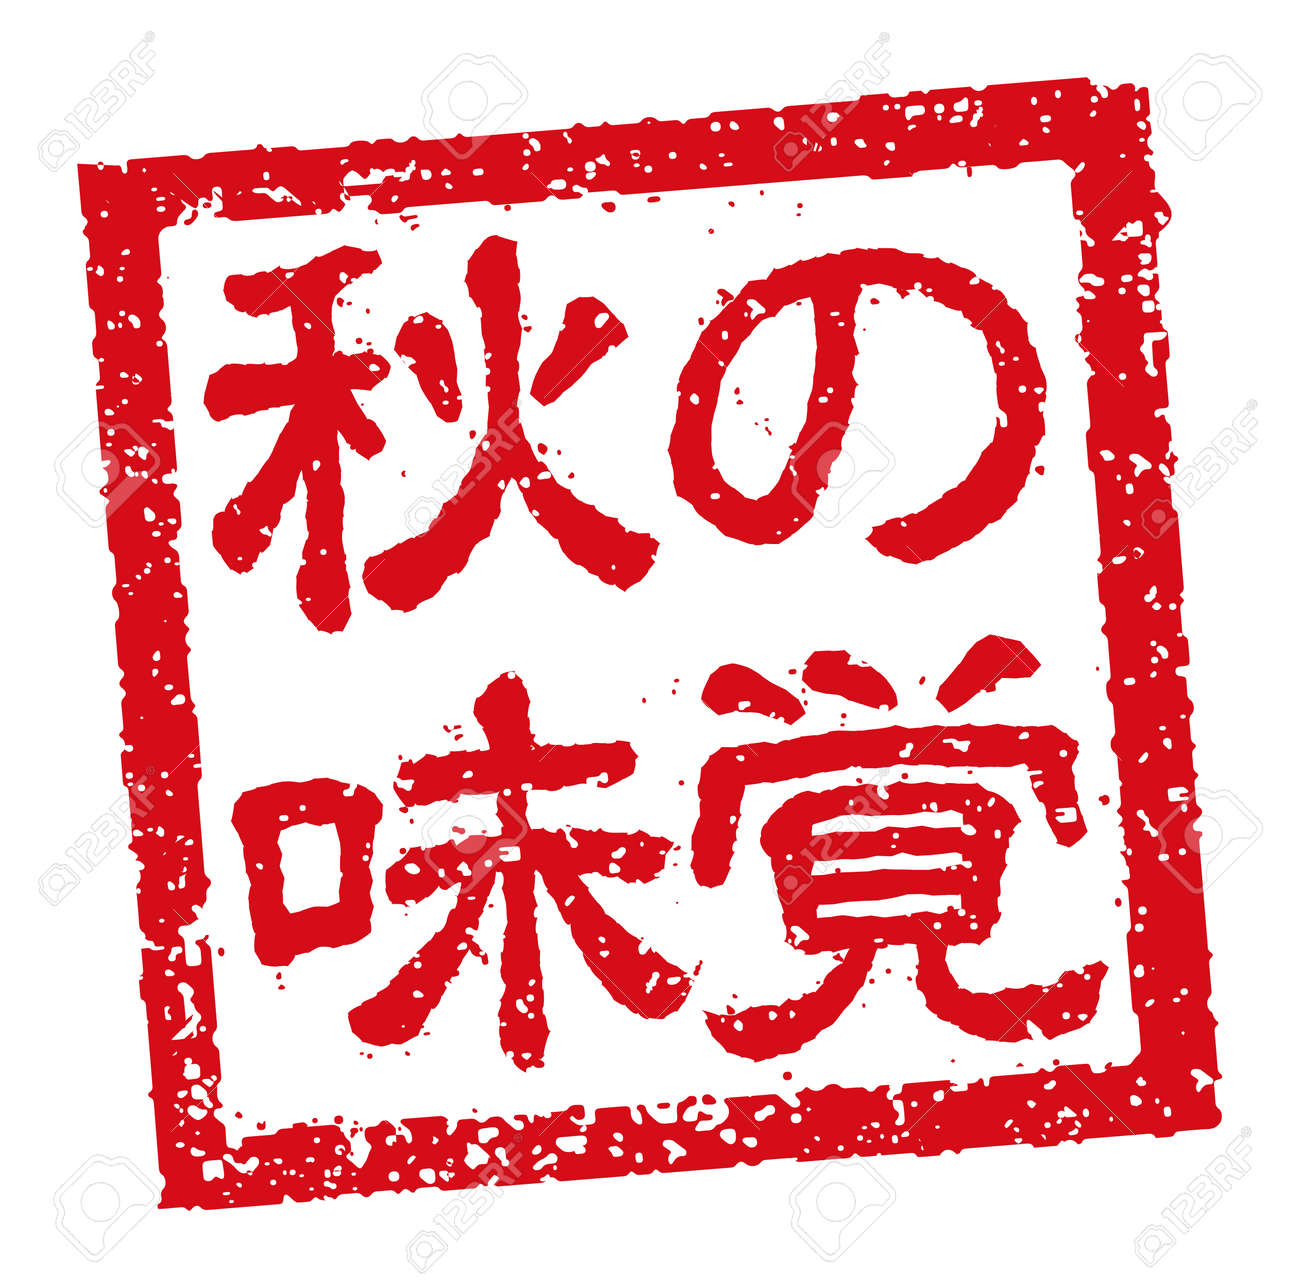 Rubber stamp illustration often used in Japanese restaurants and pubs | autumn food - 168885037